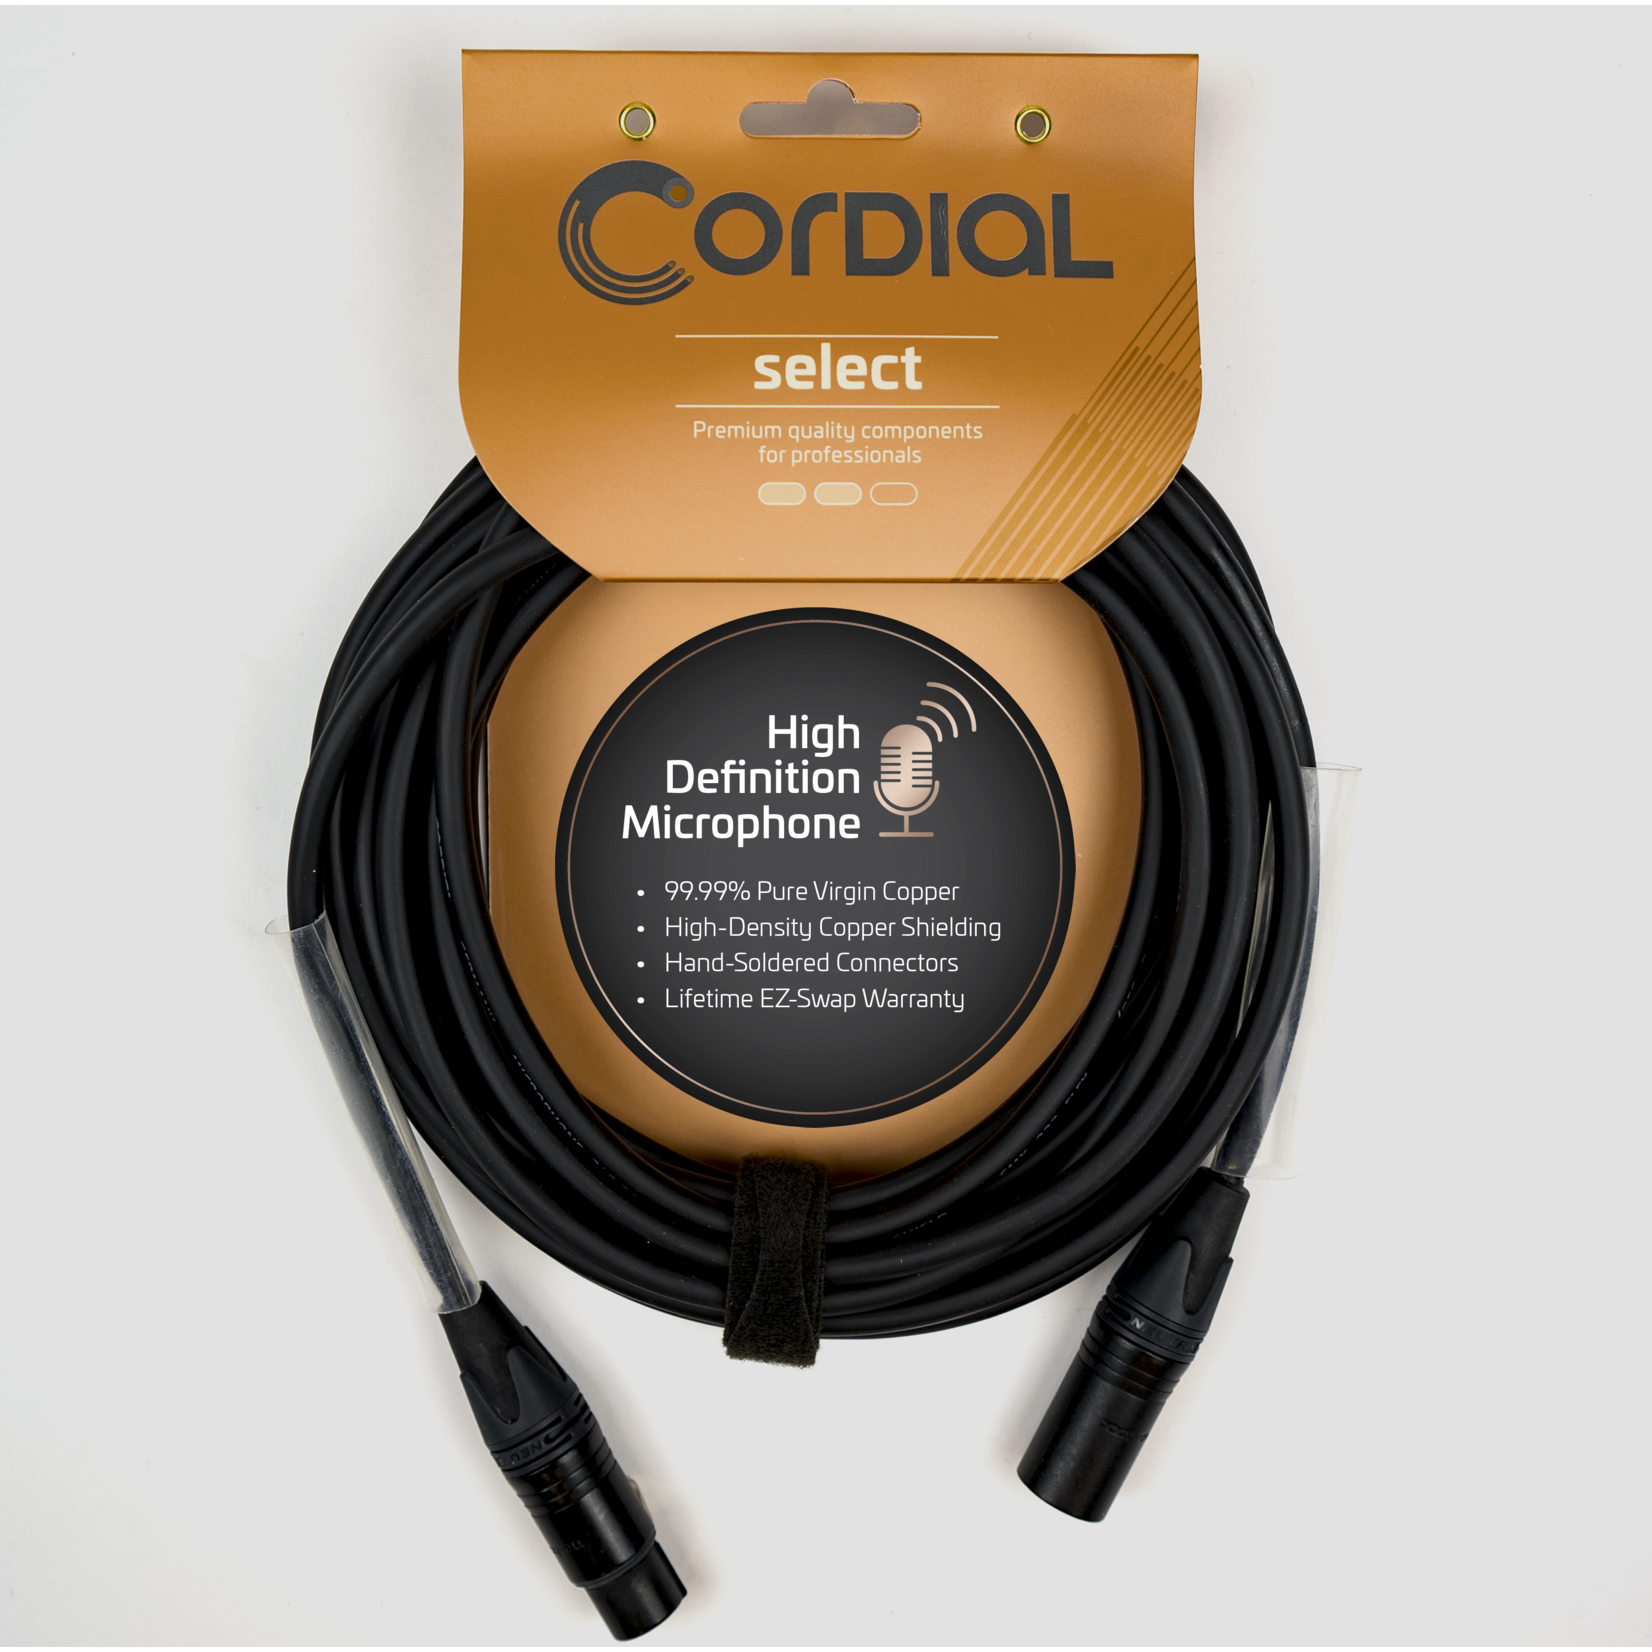 Cordial Cables Cordial Cables 16-Foot Premium Microphone (XLR) Cable, Select Series (5 FM)